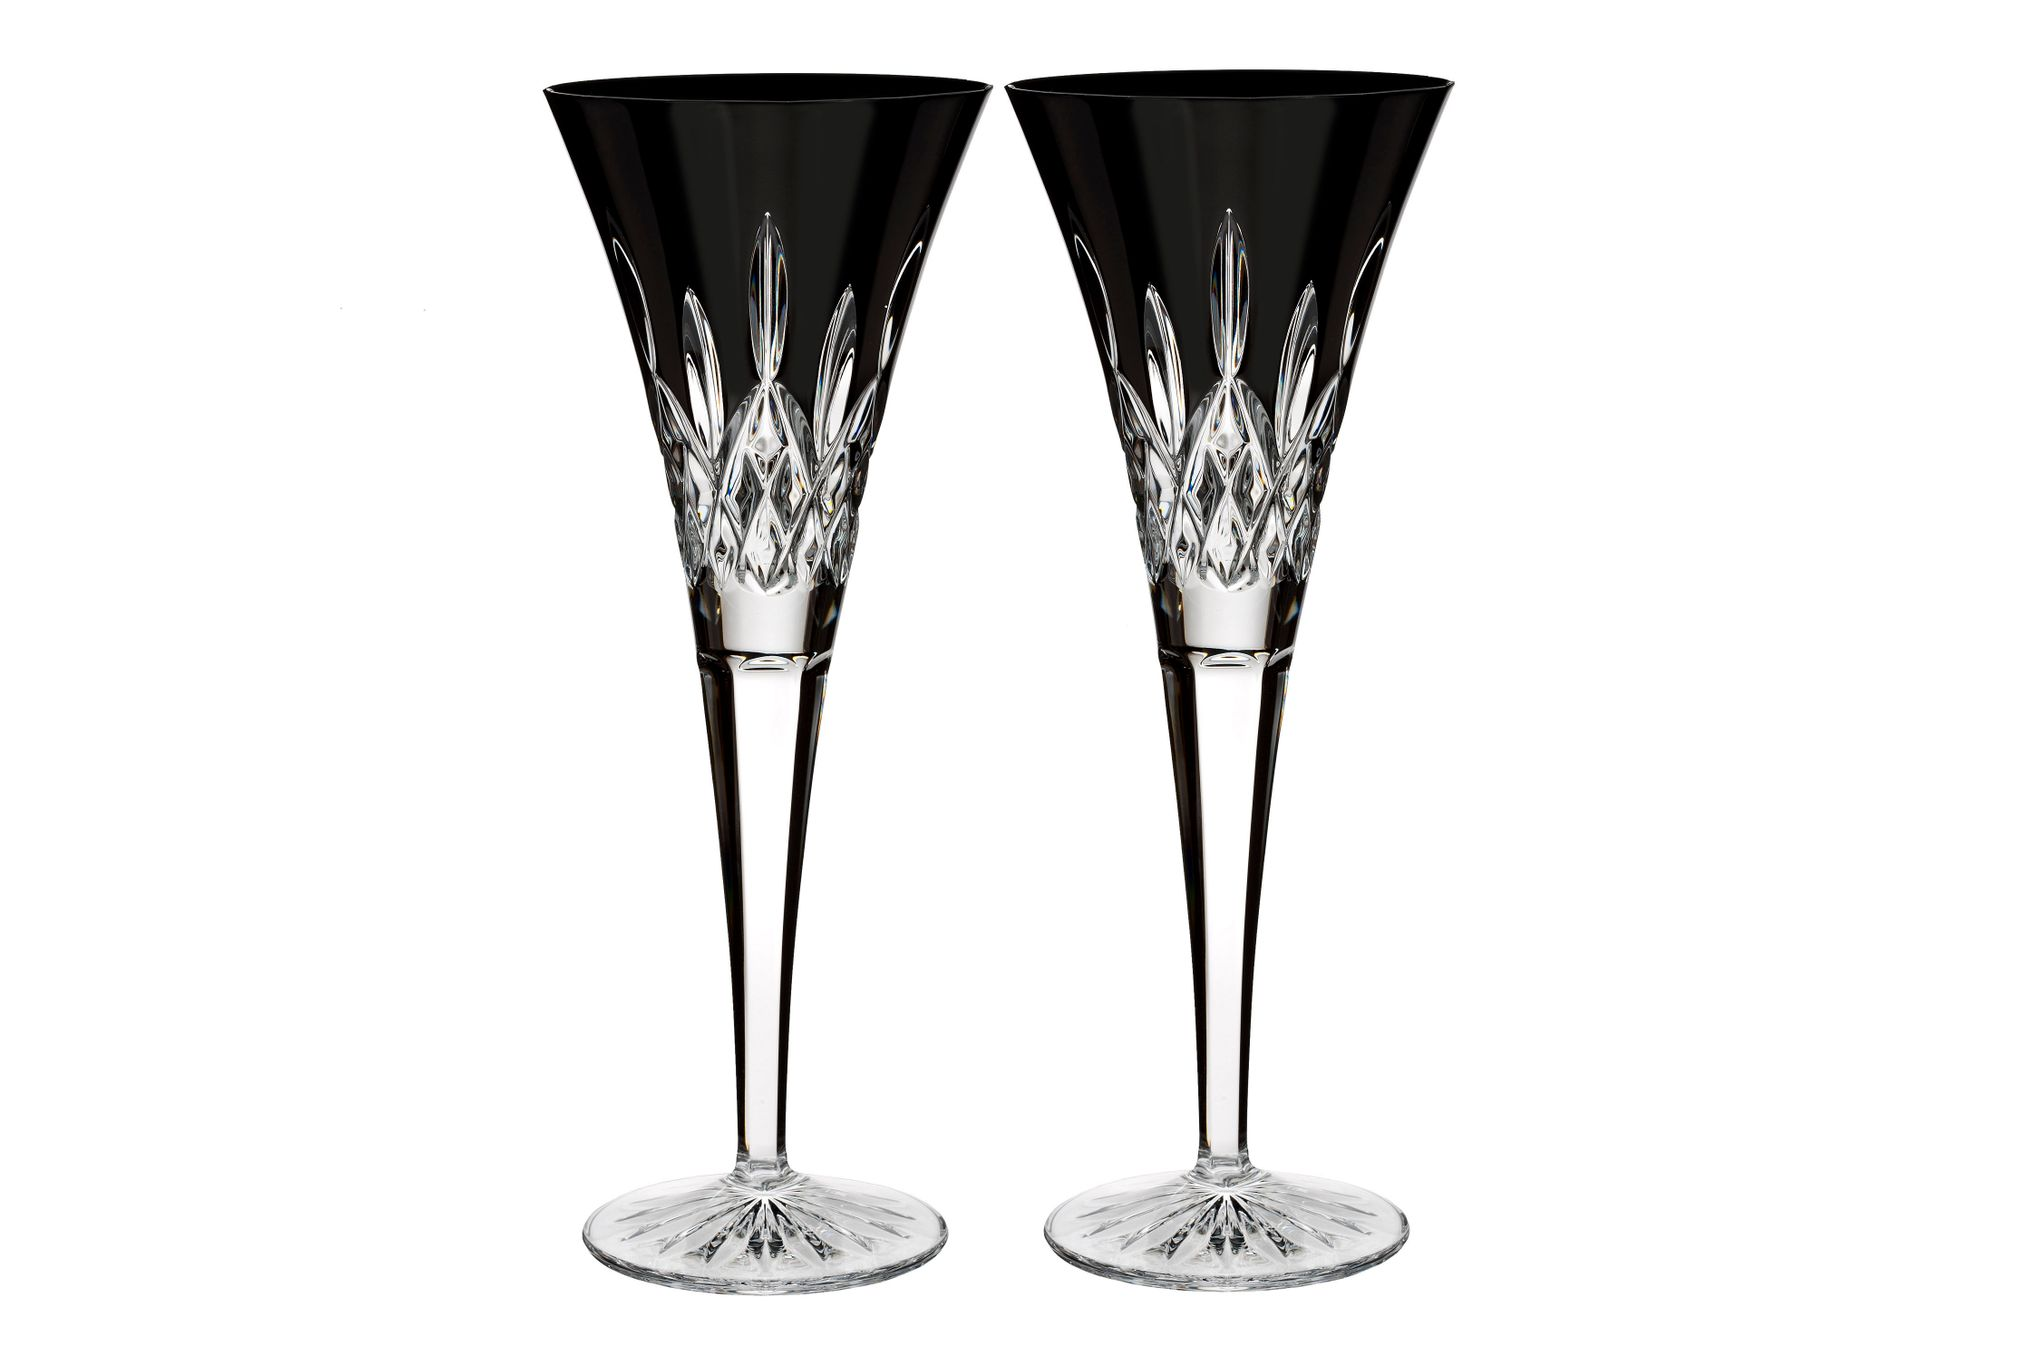 Waterford Lismore Black Pair of Flutes thumb 1